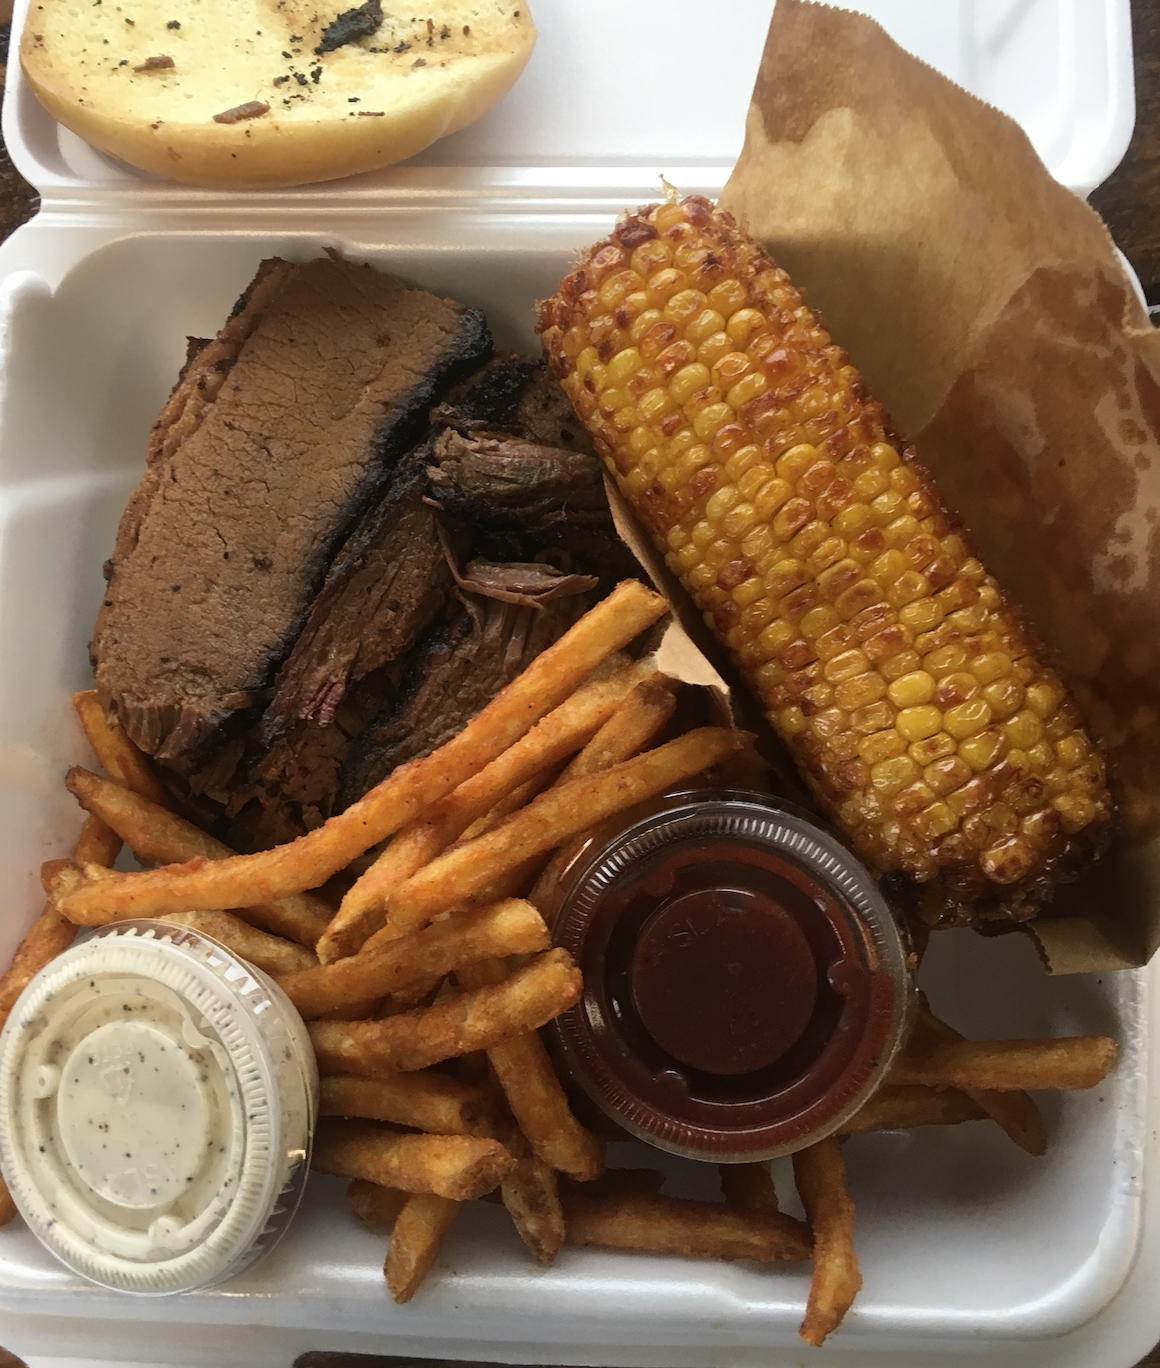 Brisket Sandwich at Louie's Hot Chicken and Barbecue